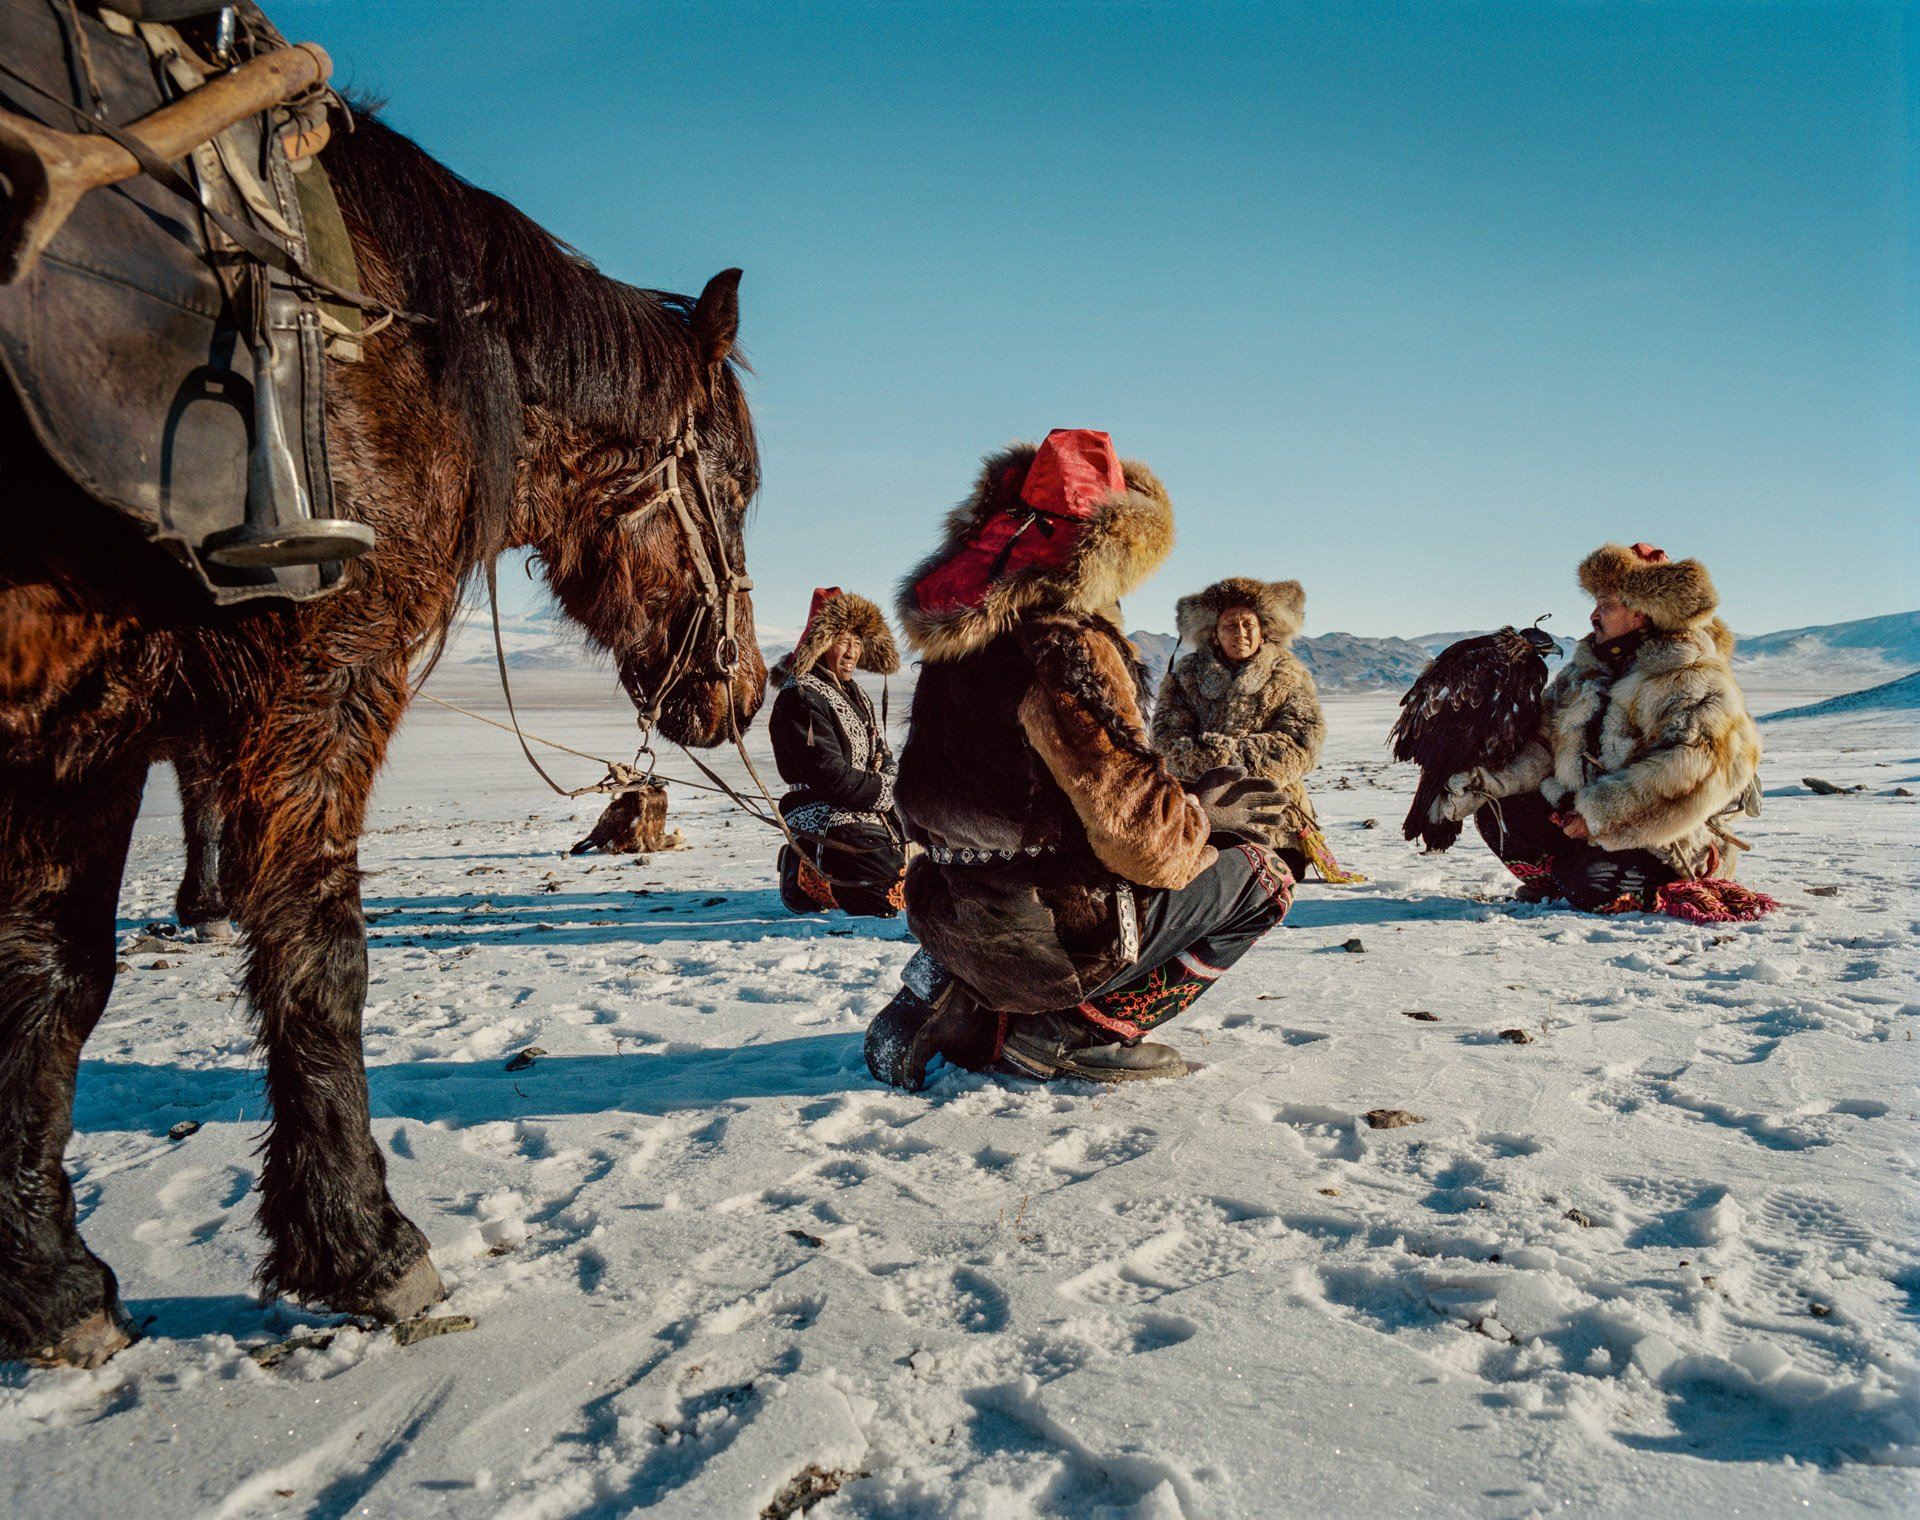 man and horse color and landscape photography in Mongolia